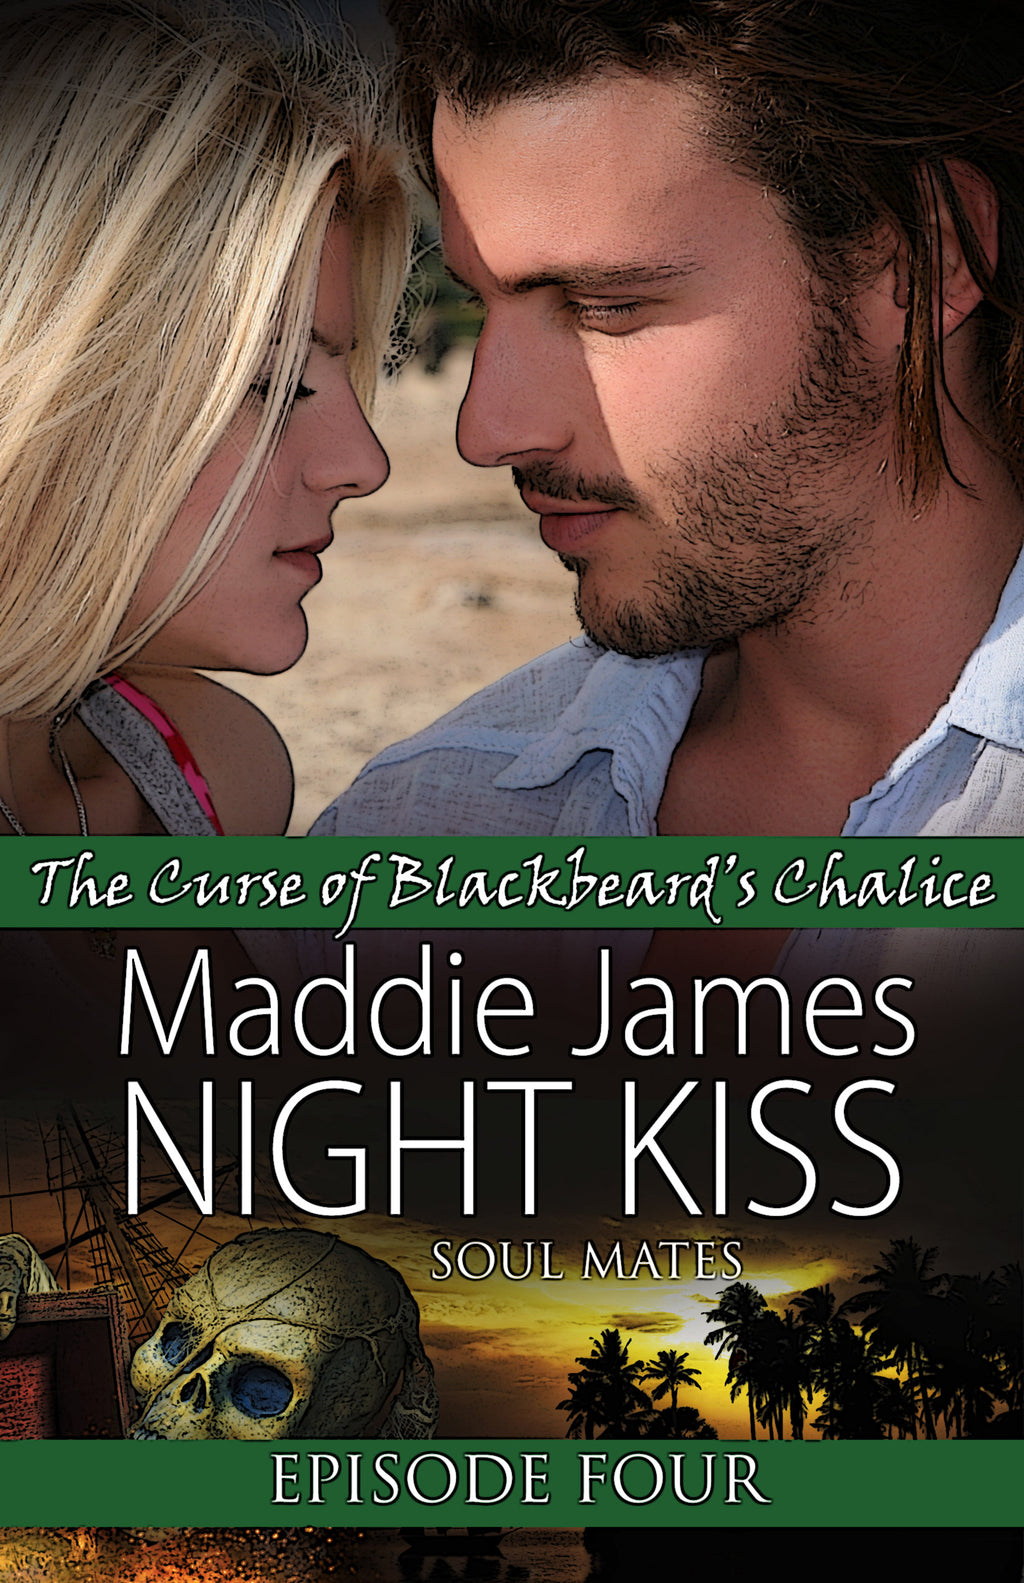 Night Kiss Episode IV - The Curse of Blackbeard's Chalice